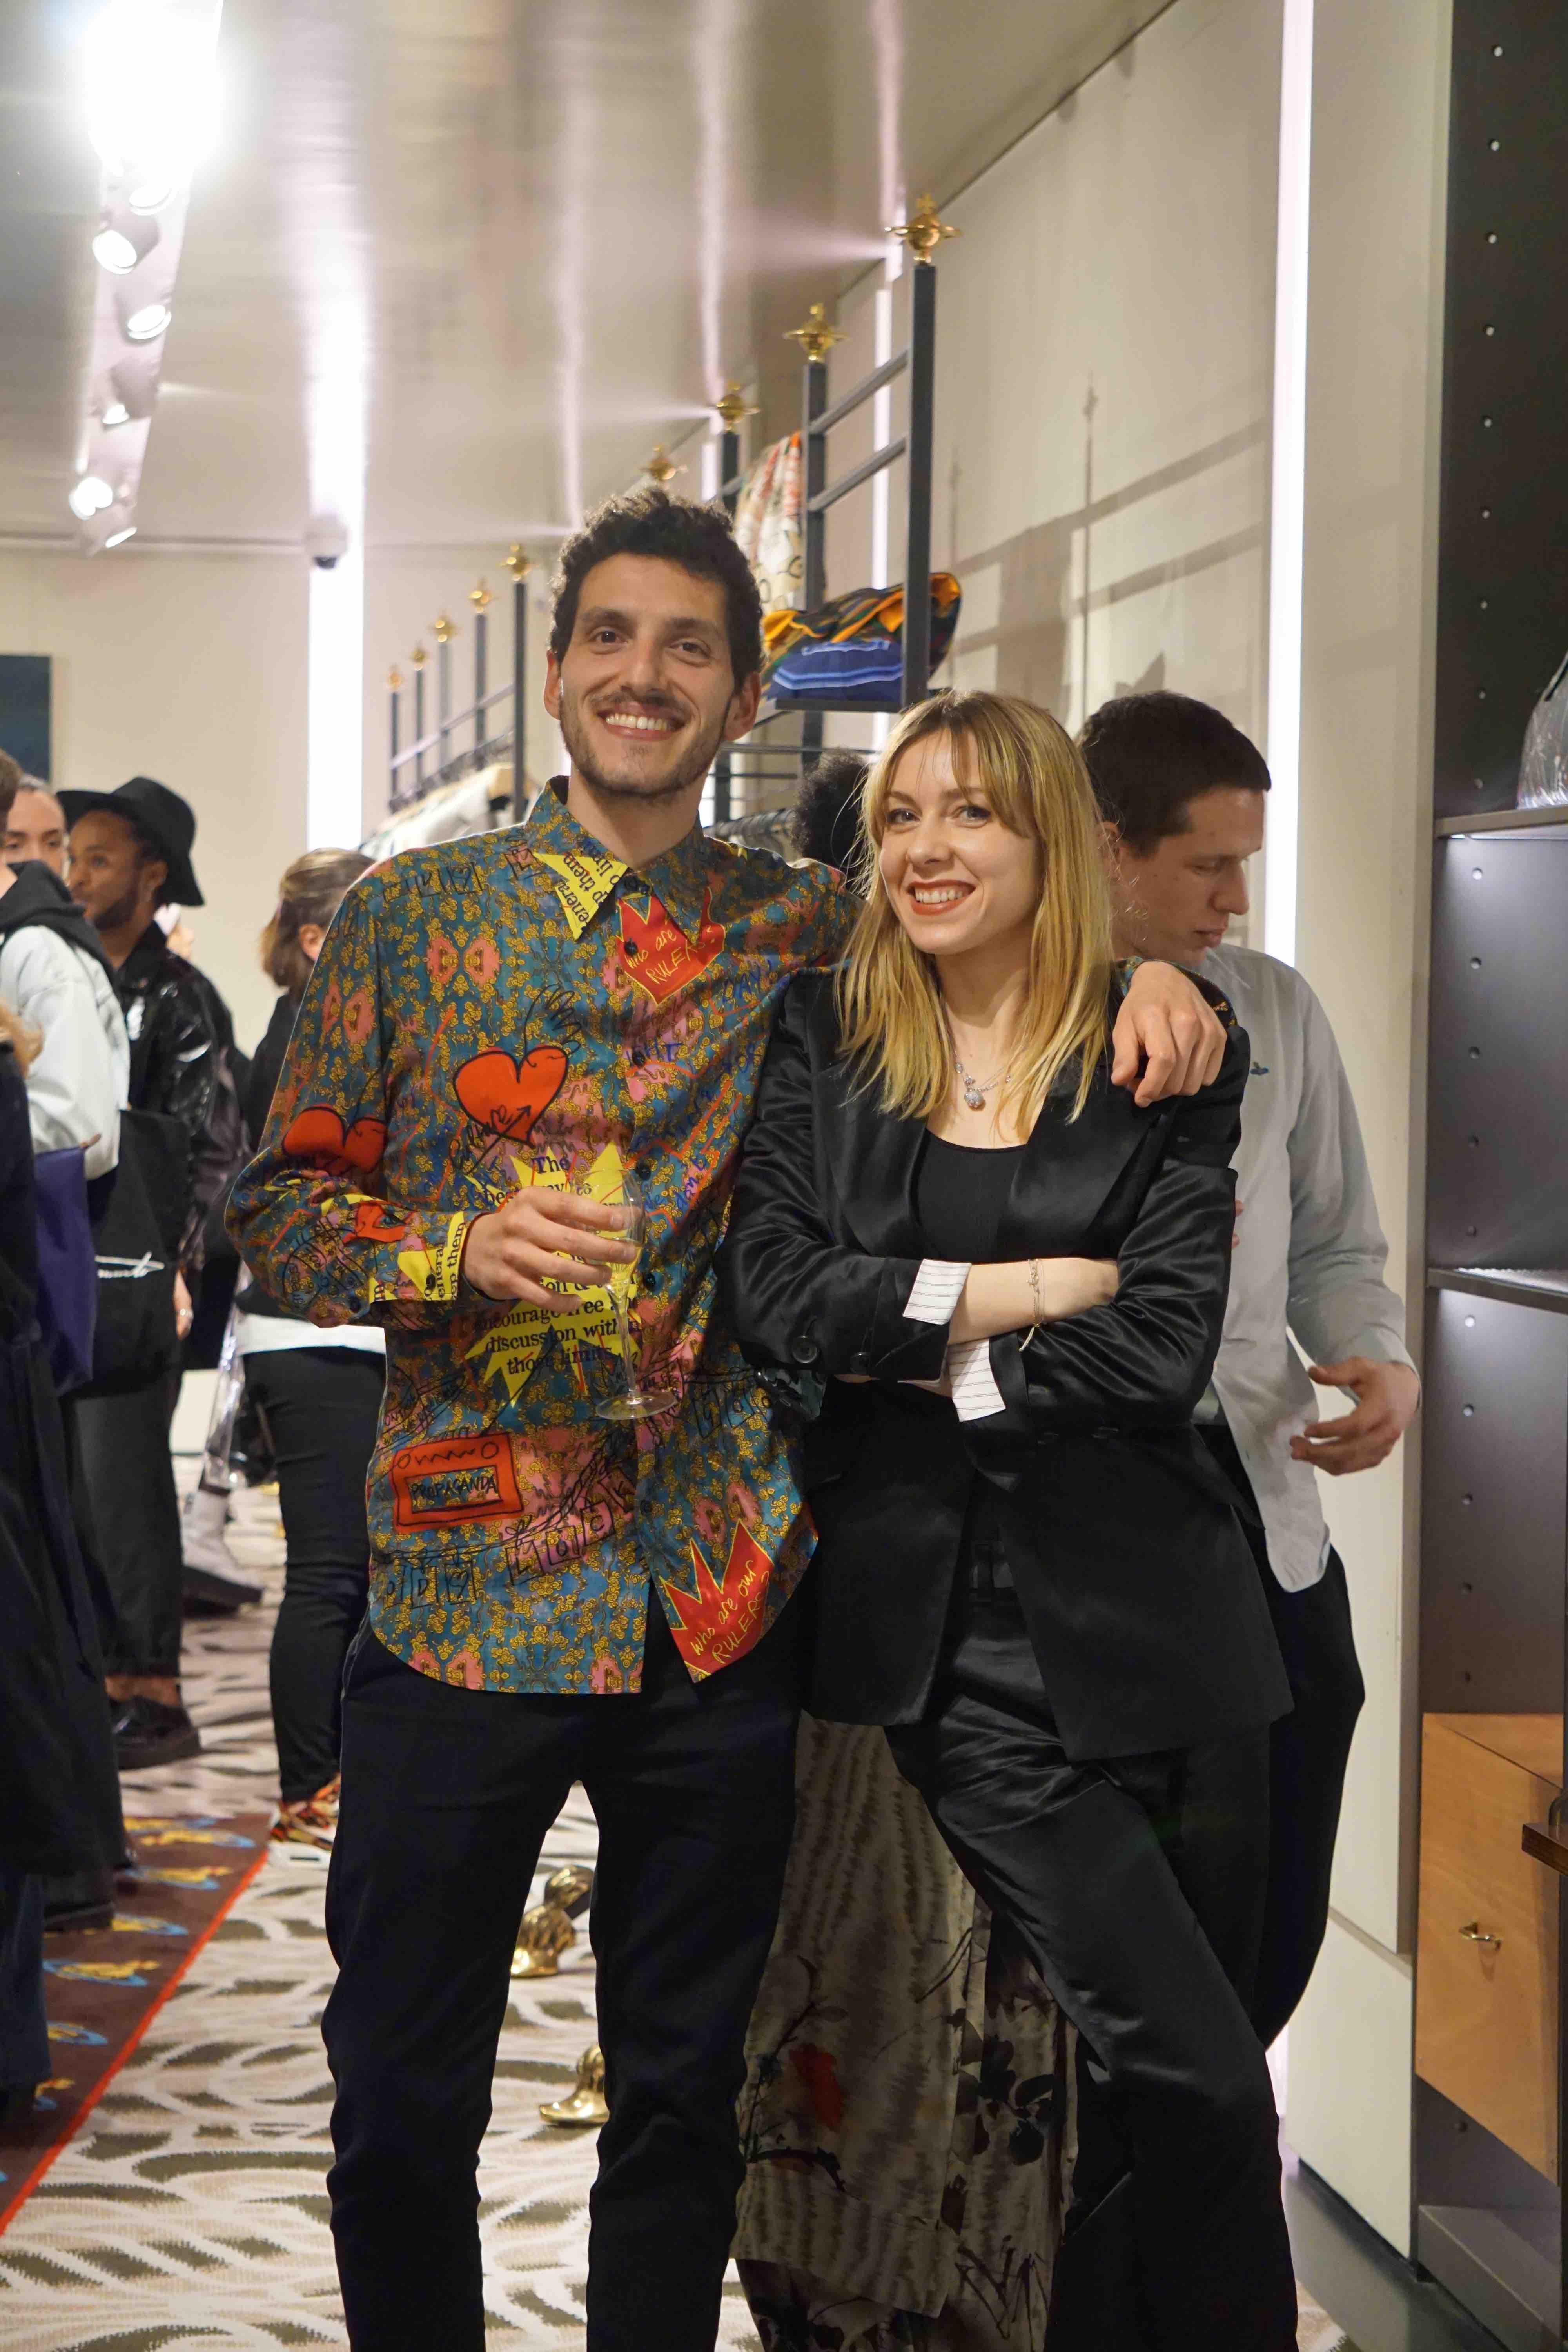 Le vernissage à la boutique Vivienne Westwood, 175 rue Saint-Honoré.